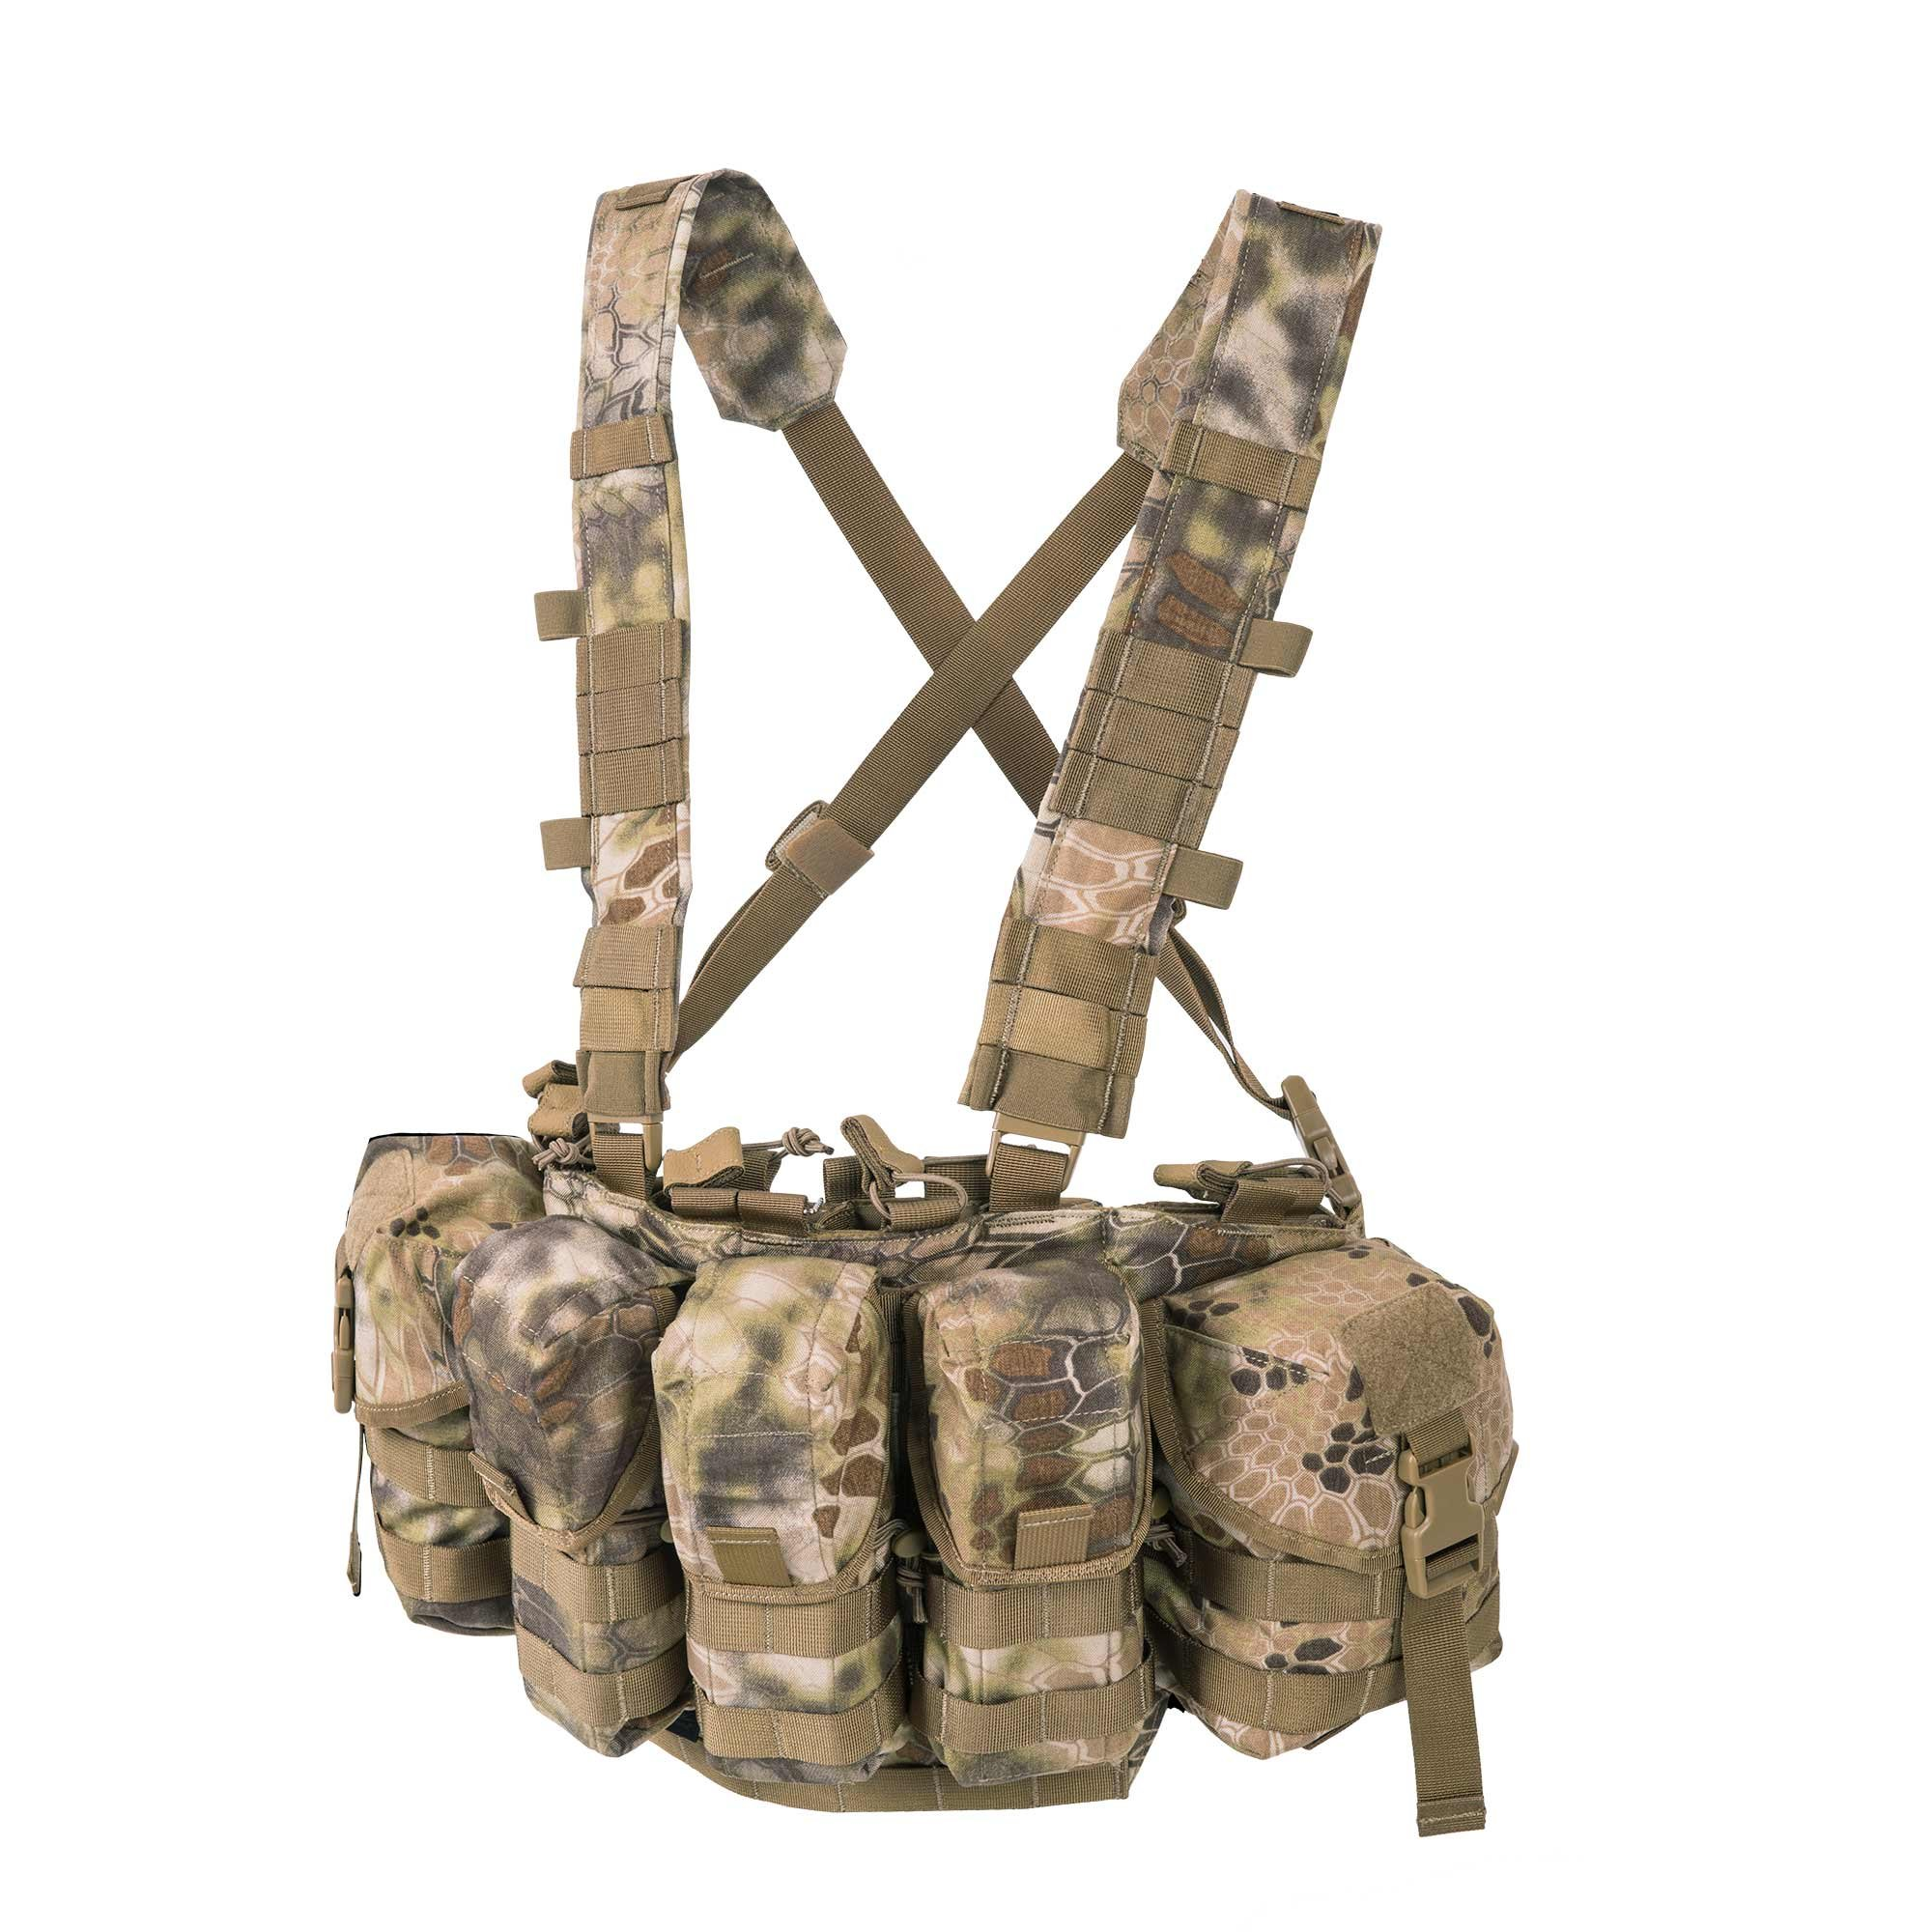 Helikon-Tex Patrol Line, Guardian Chest Rig Kryptek Highlander by Helikon-Tex